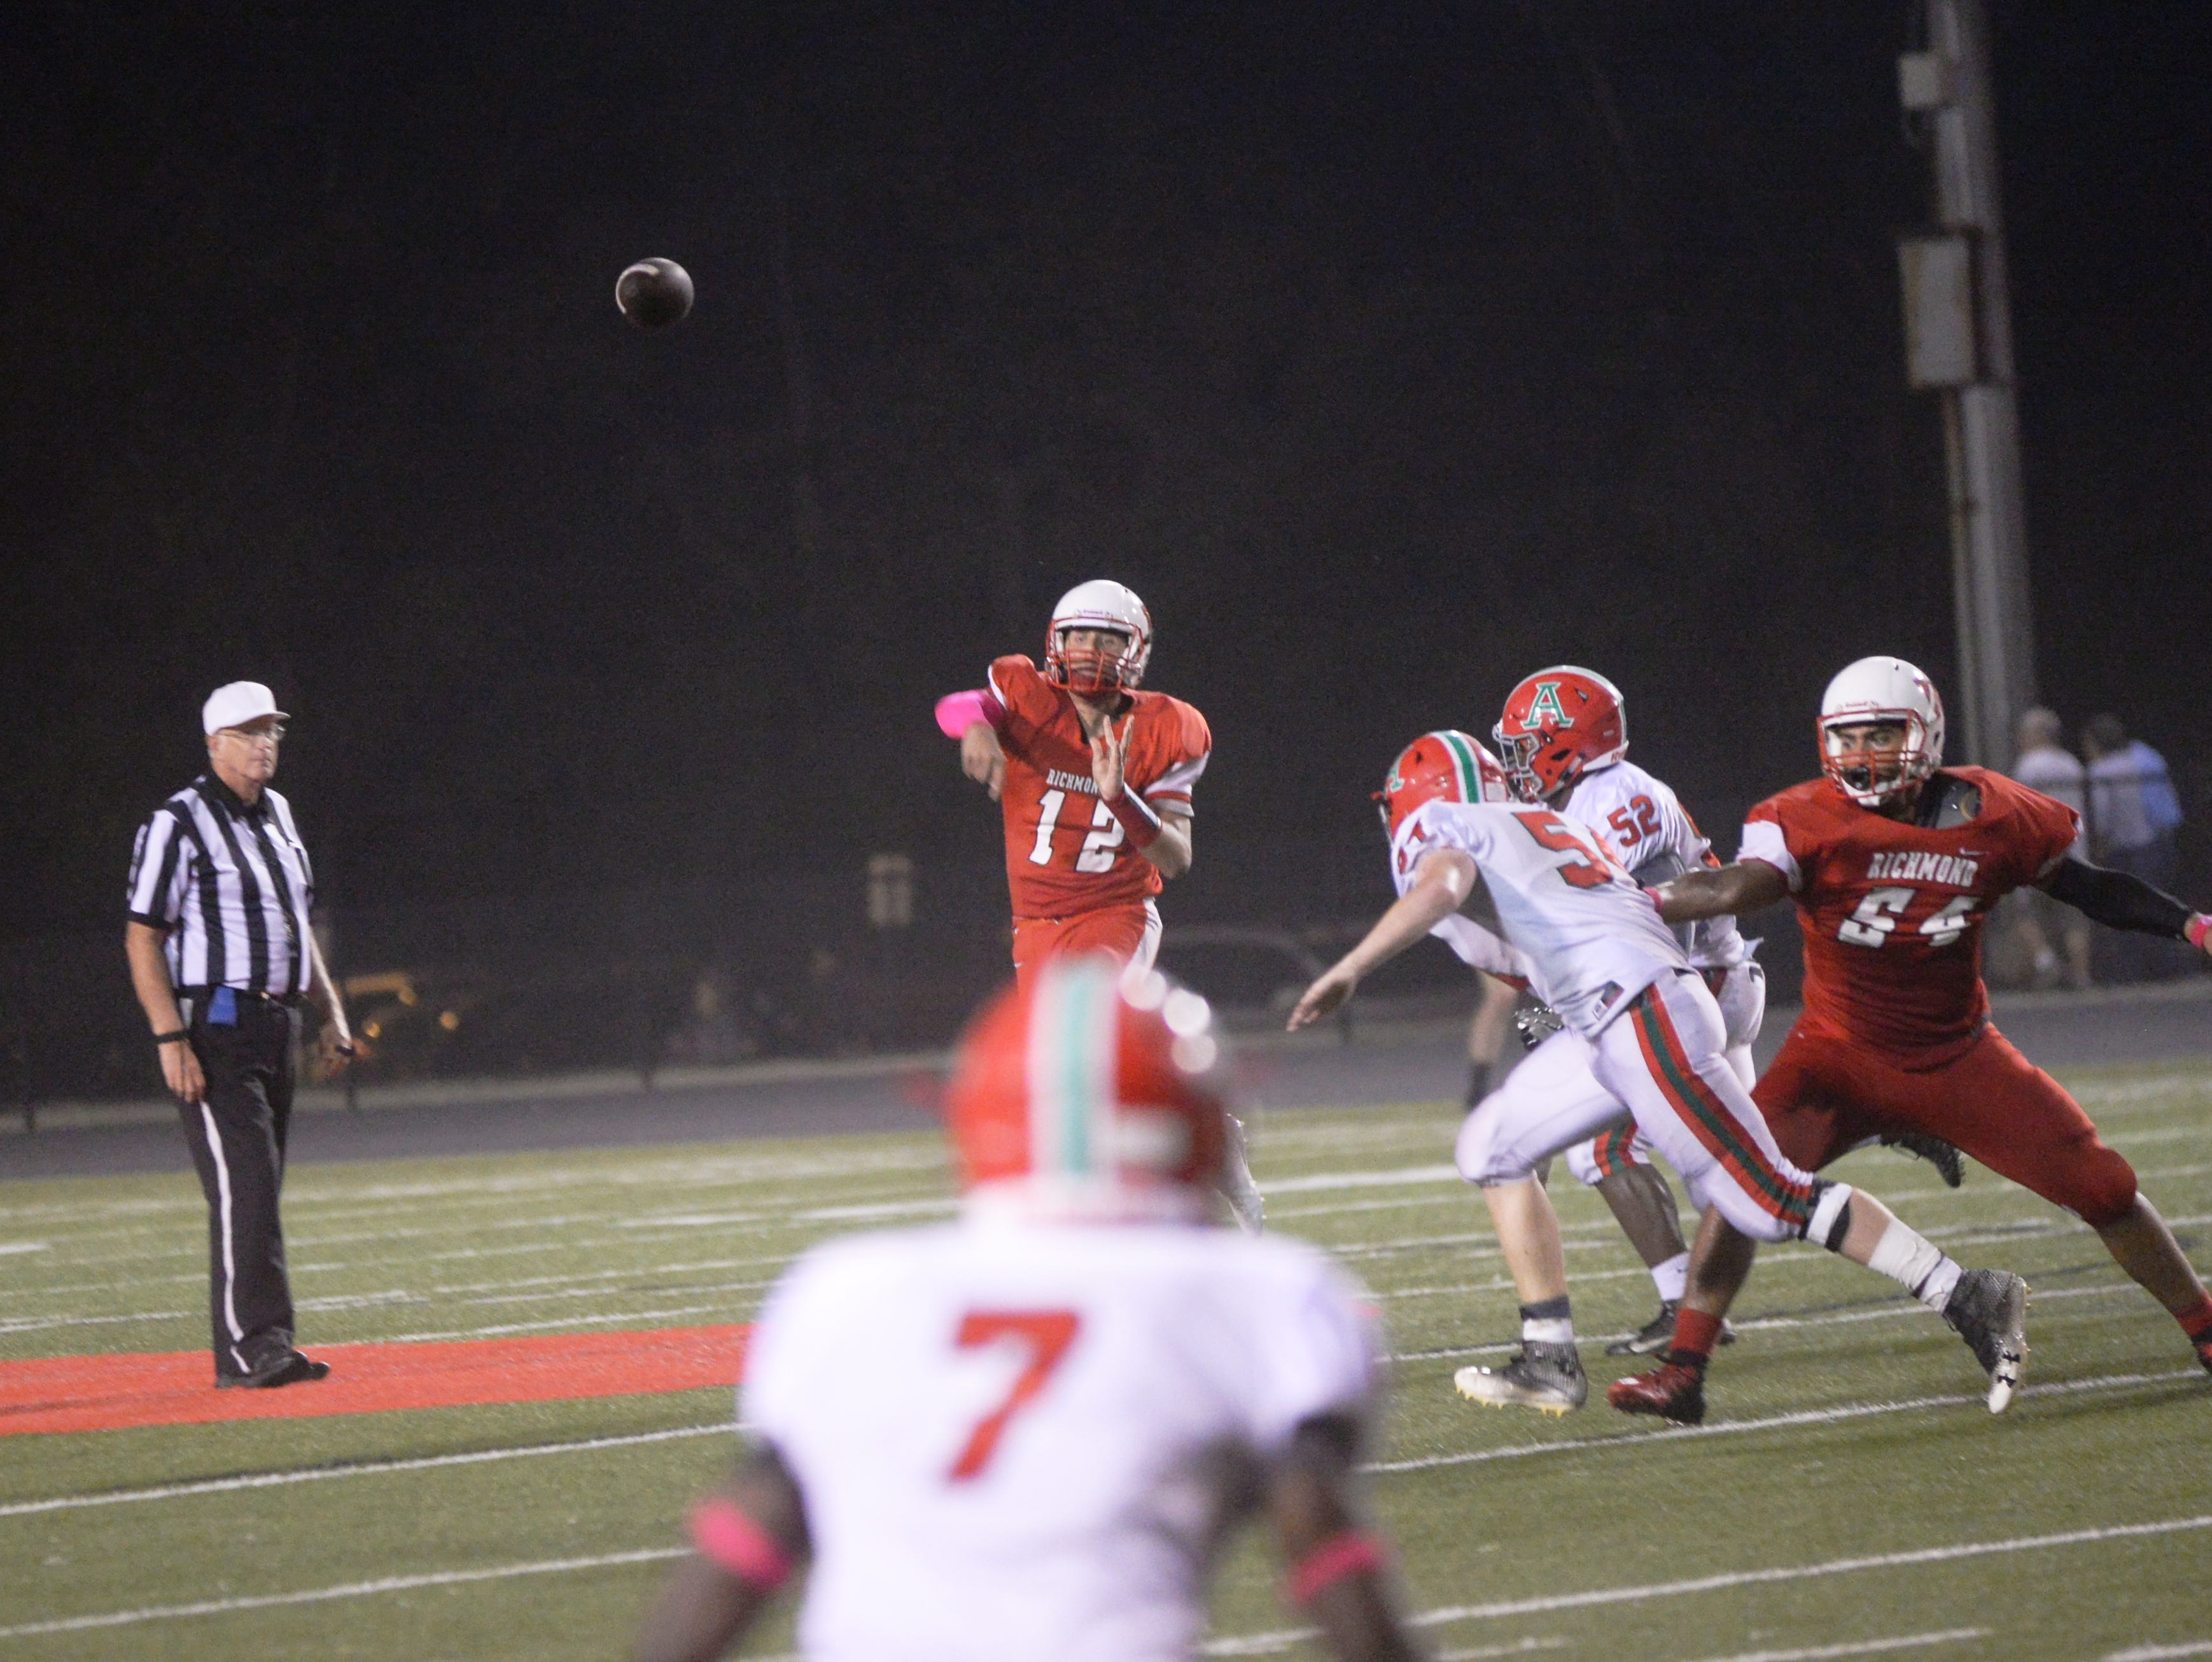 Richmond's Zach Hill (12) throws a pass during the Richmond High School football team's  27-26 loss to Anderson Friday, Oct. 5, 2018 at Lyboult Field.